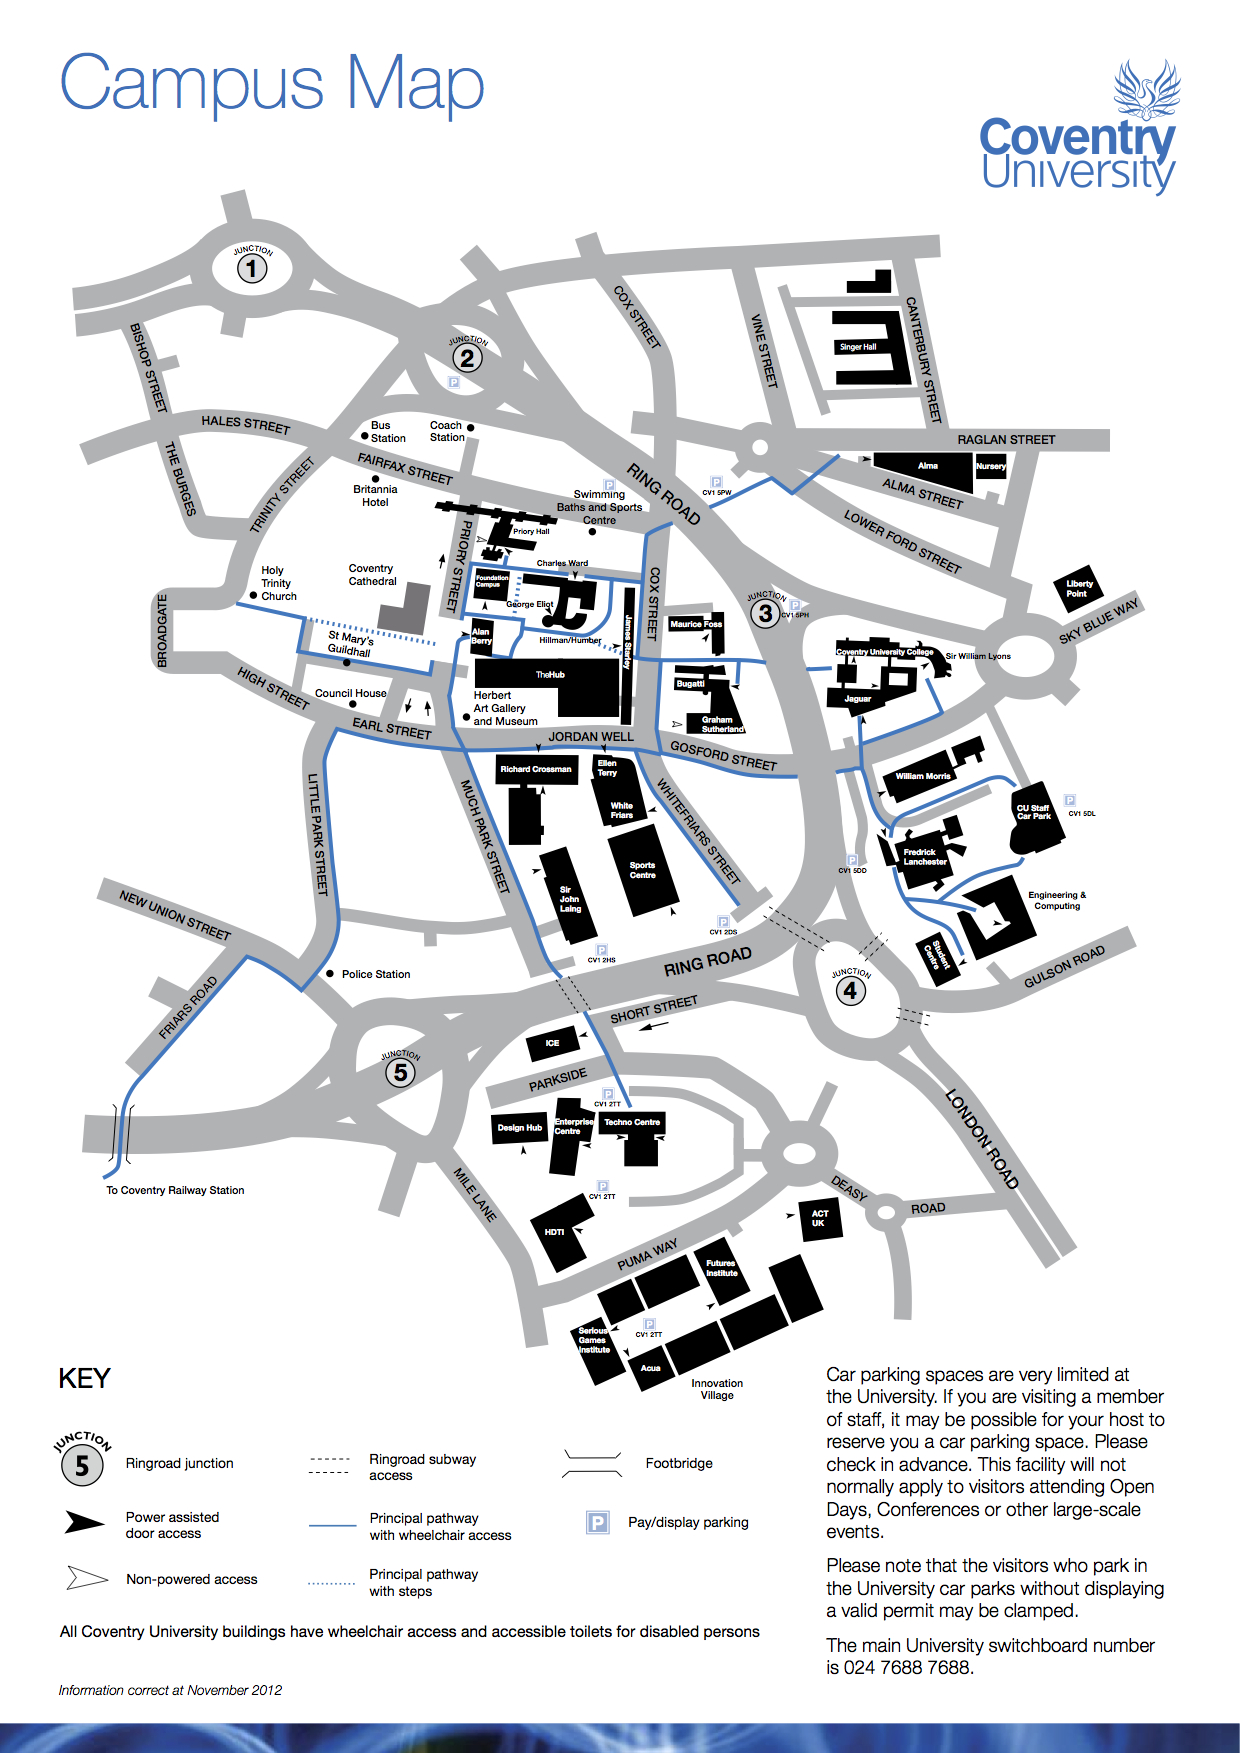 Coventry University Campus Map Welcome to Coventry University! Coventry University Campus Map